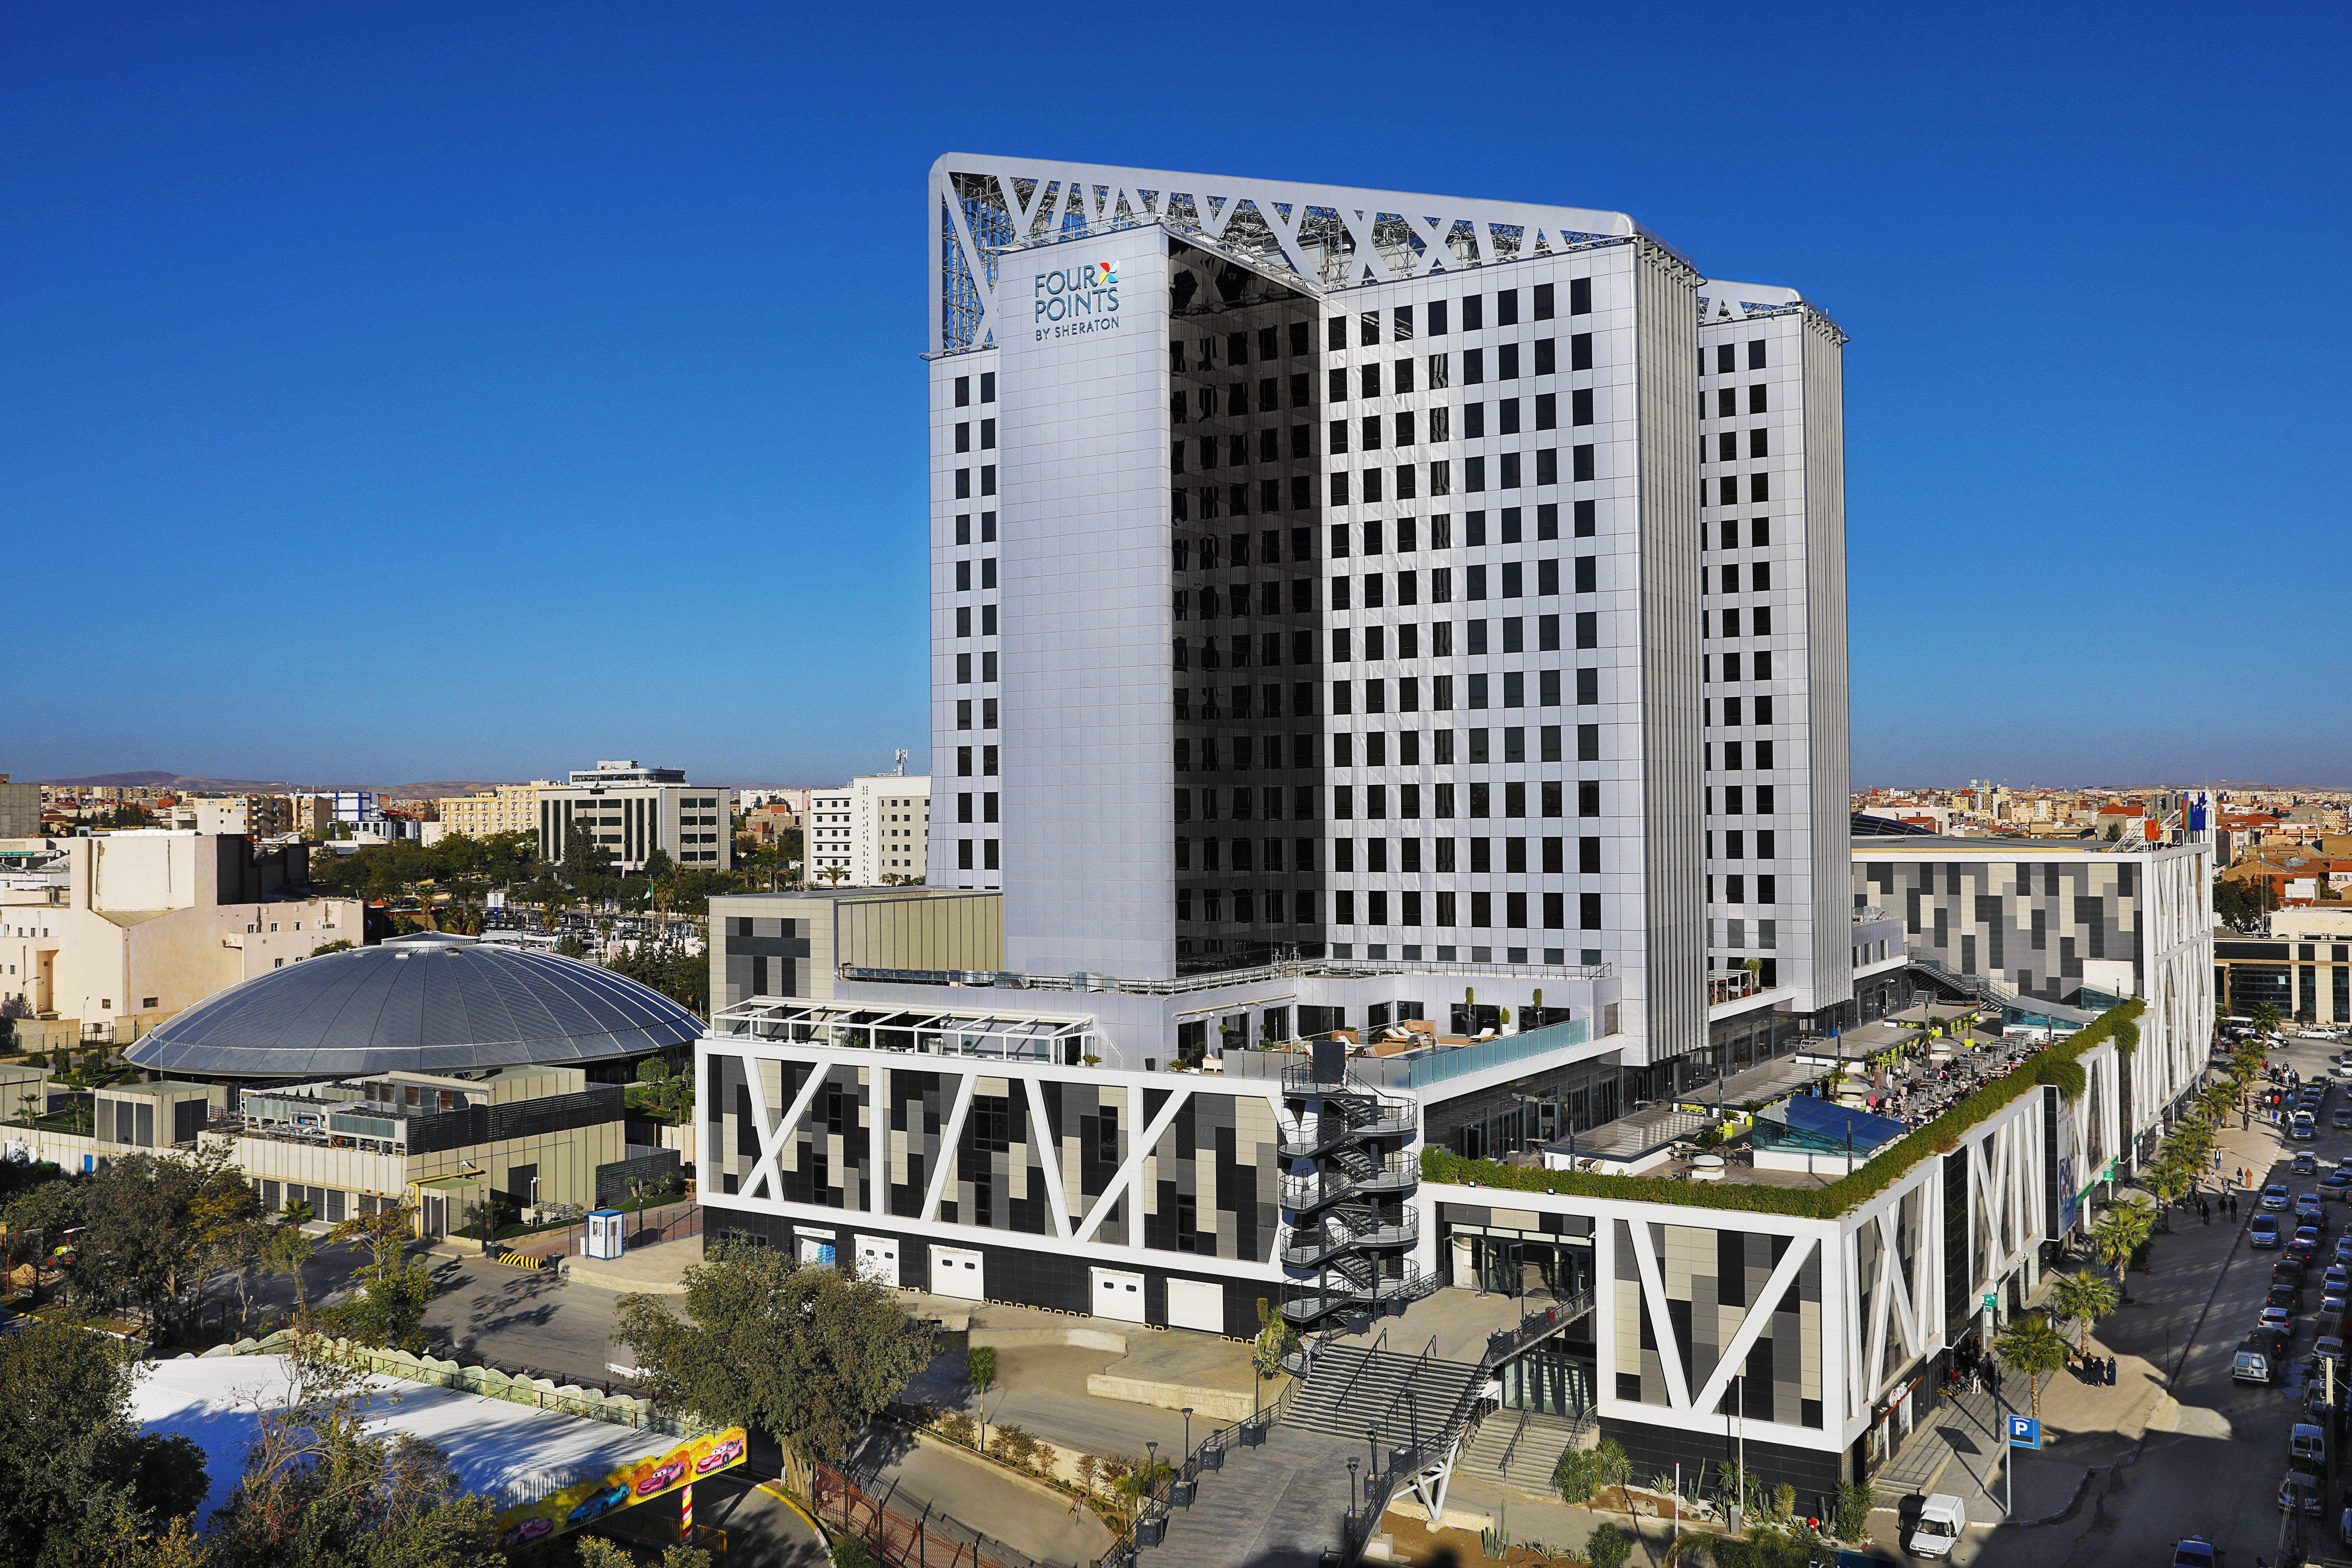 Marriott International announces the opening of Four Points by Sheraton Setif in Algeria